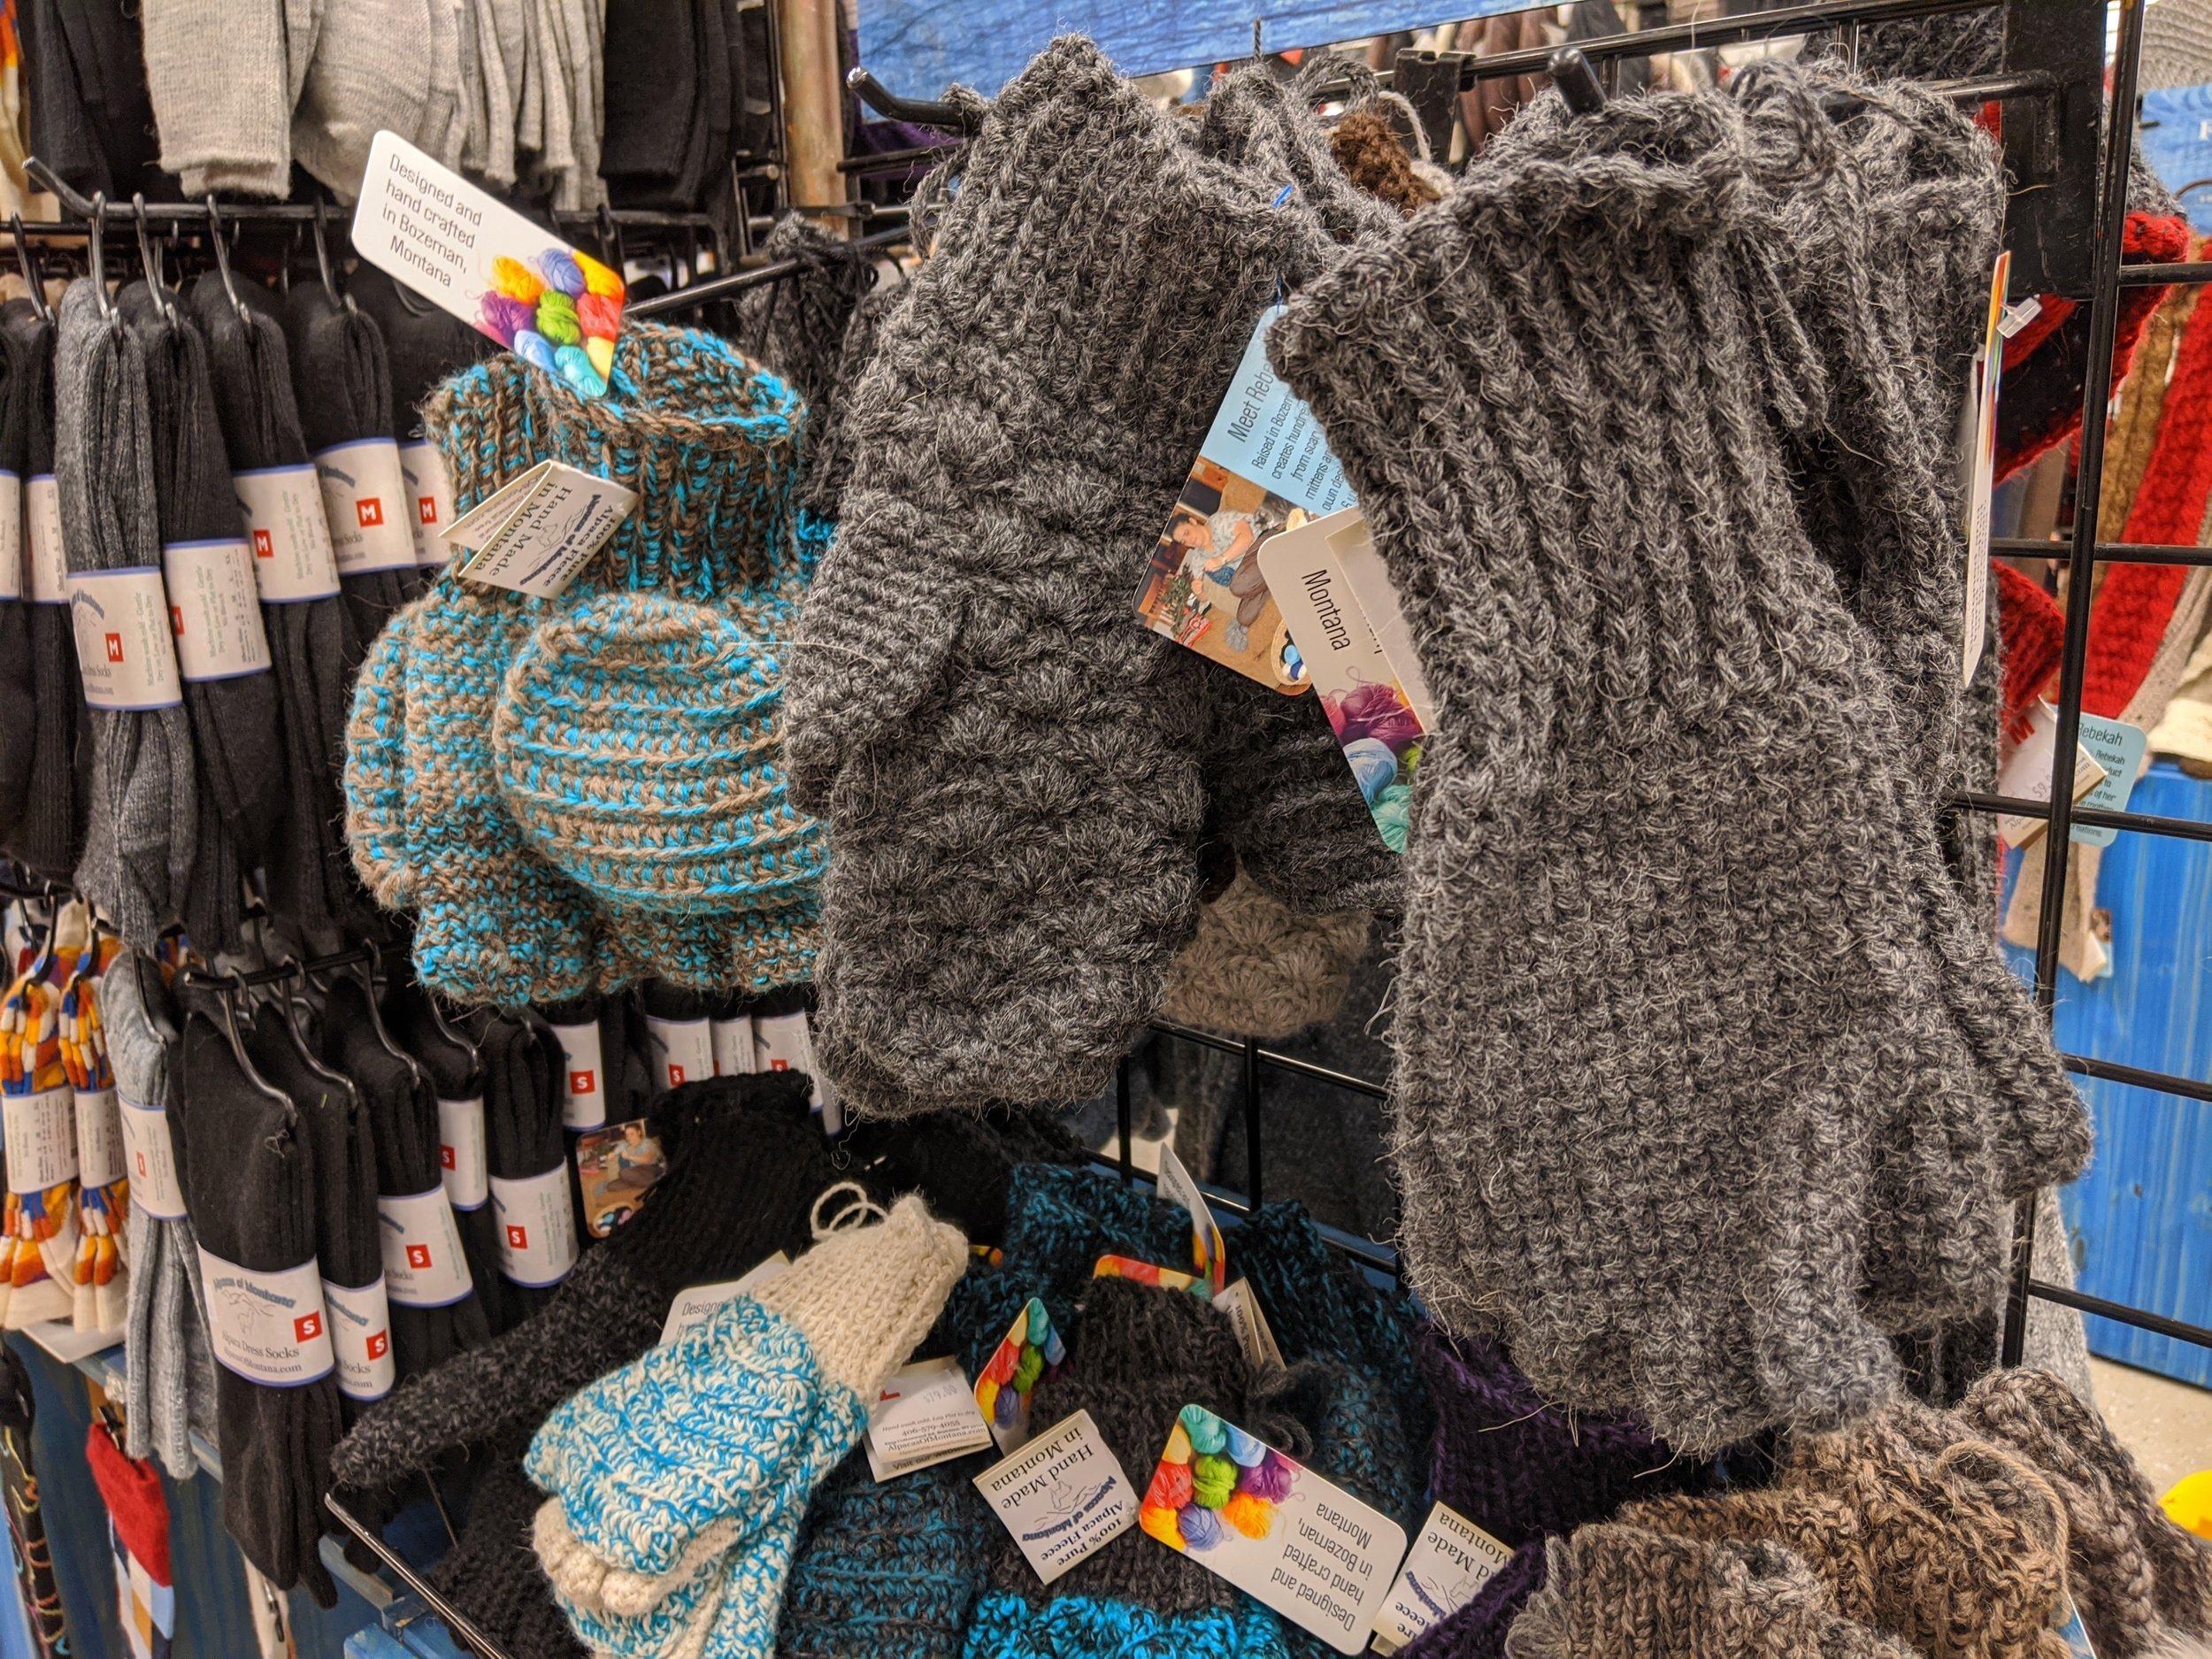 wool gloves sale owenhouse ace hardware - Bozeman, Montana